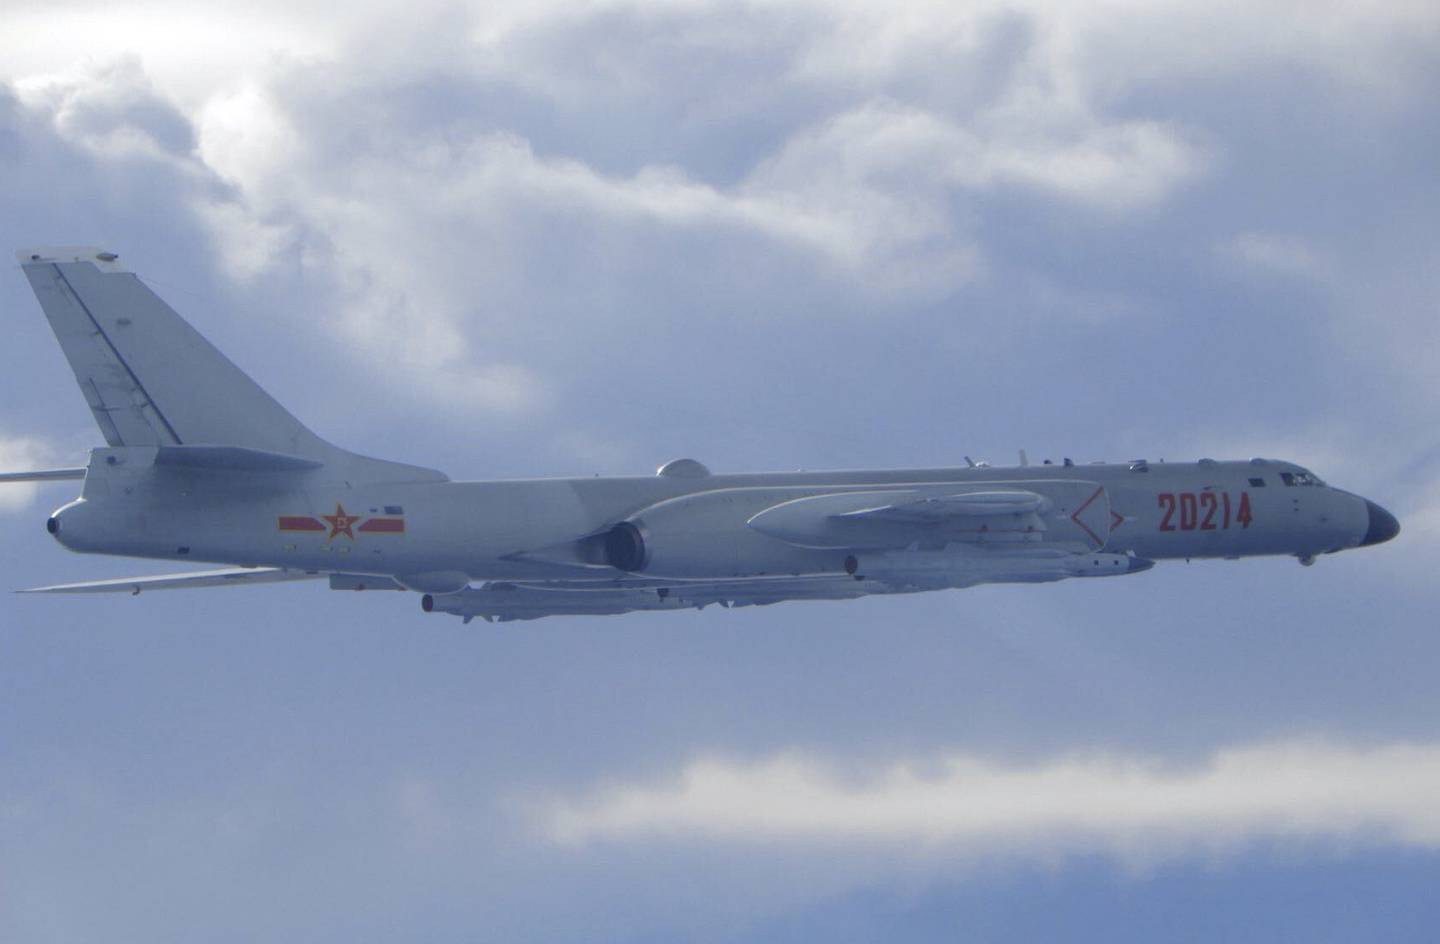 In this photo released by the Taiwan Ministry of National Defense, a Chinese People's Liberation Army H-6 bomber is seen flying near the Taiwan air defense identification zone, ADIZ, near Taiwan on Friday, Sept. 18, 2020.